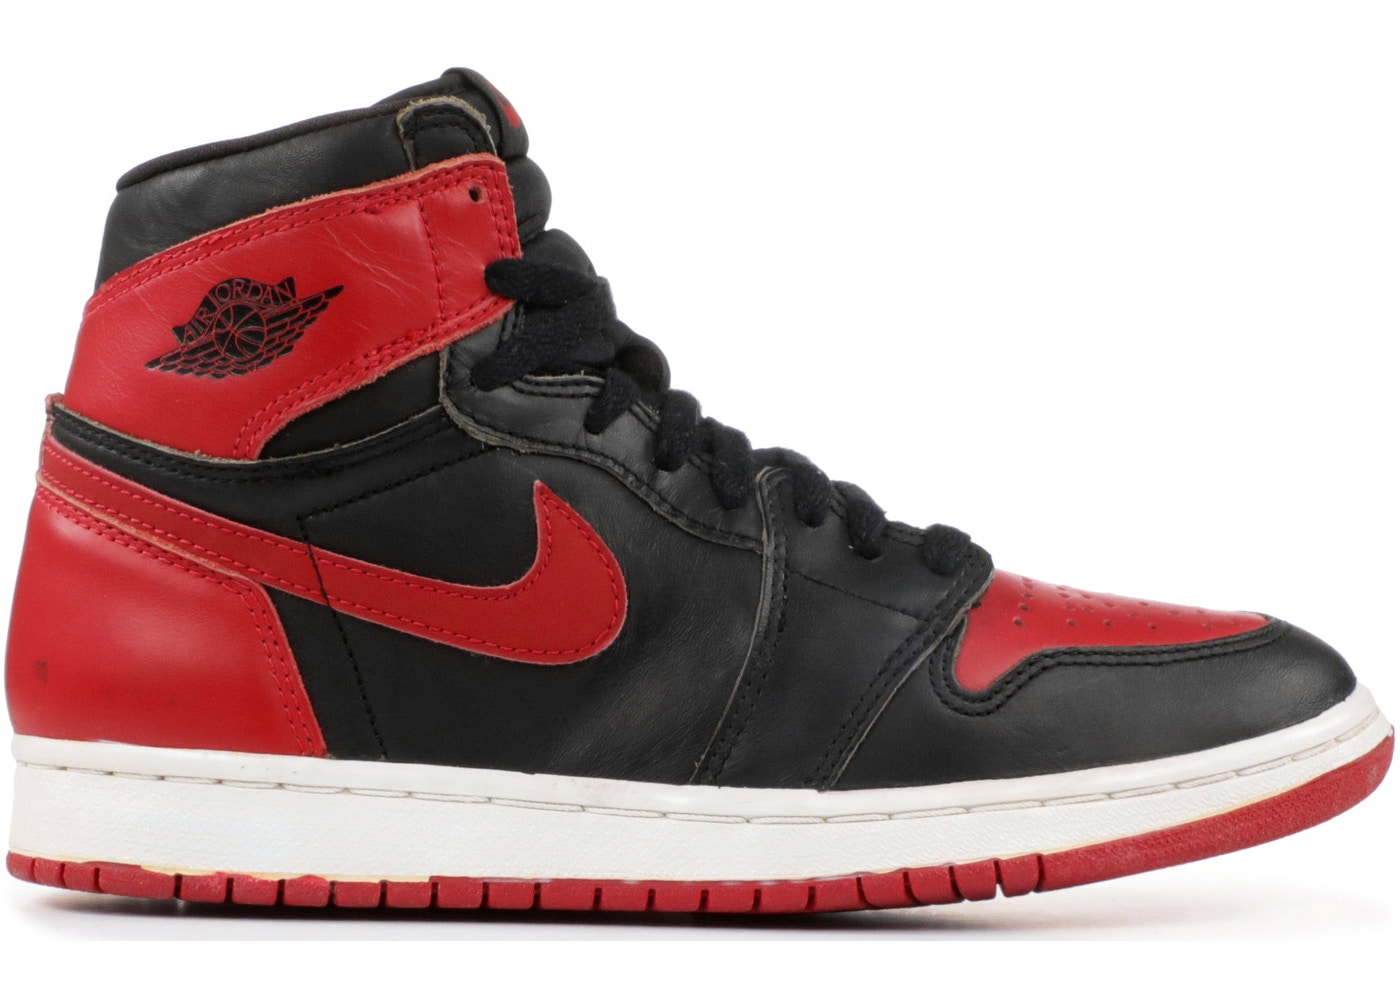 on feet at first rate uk cheap sale Jordan 1 Retro Bred (1994)